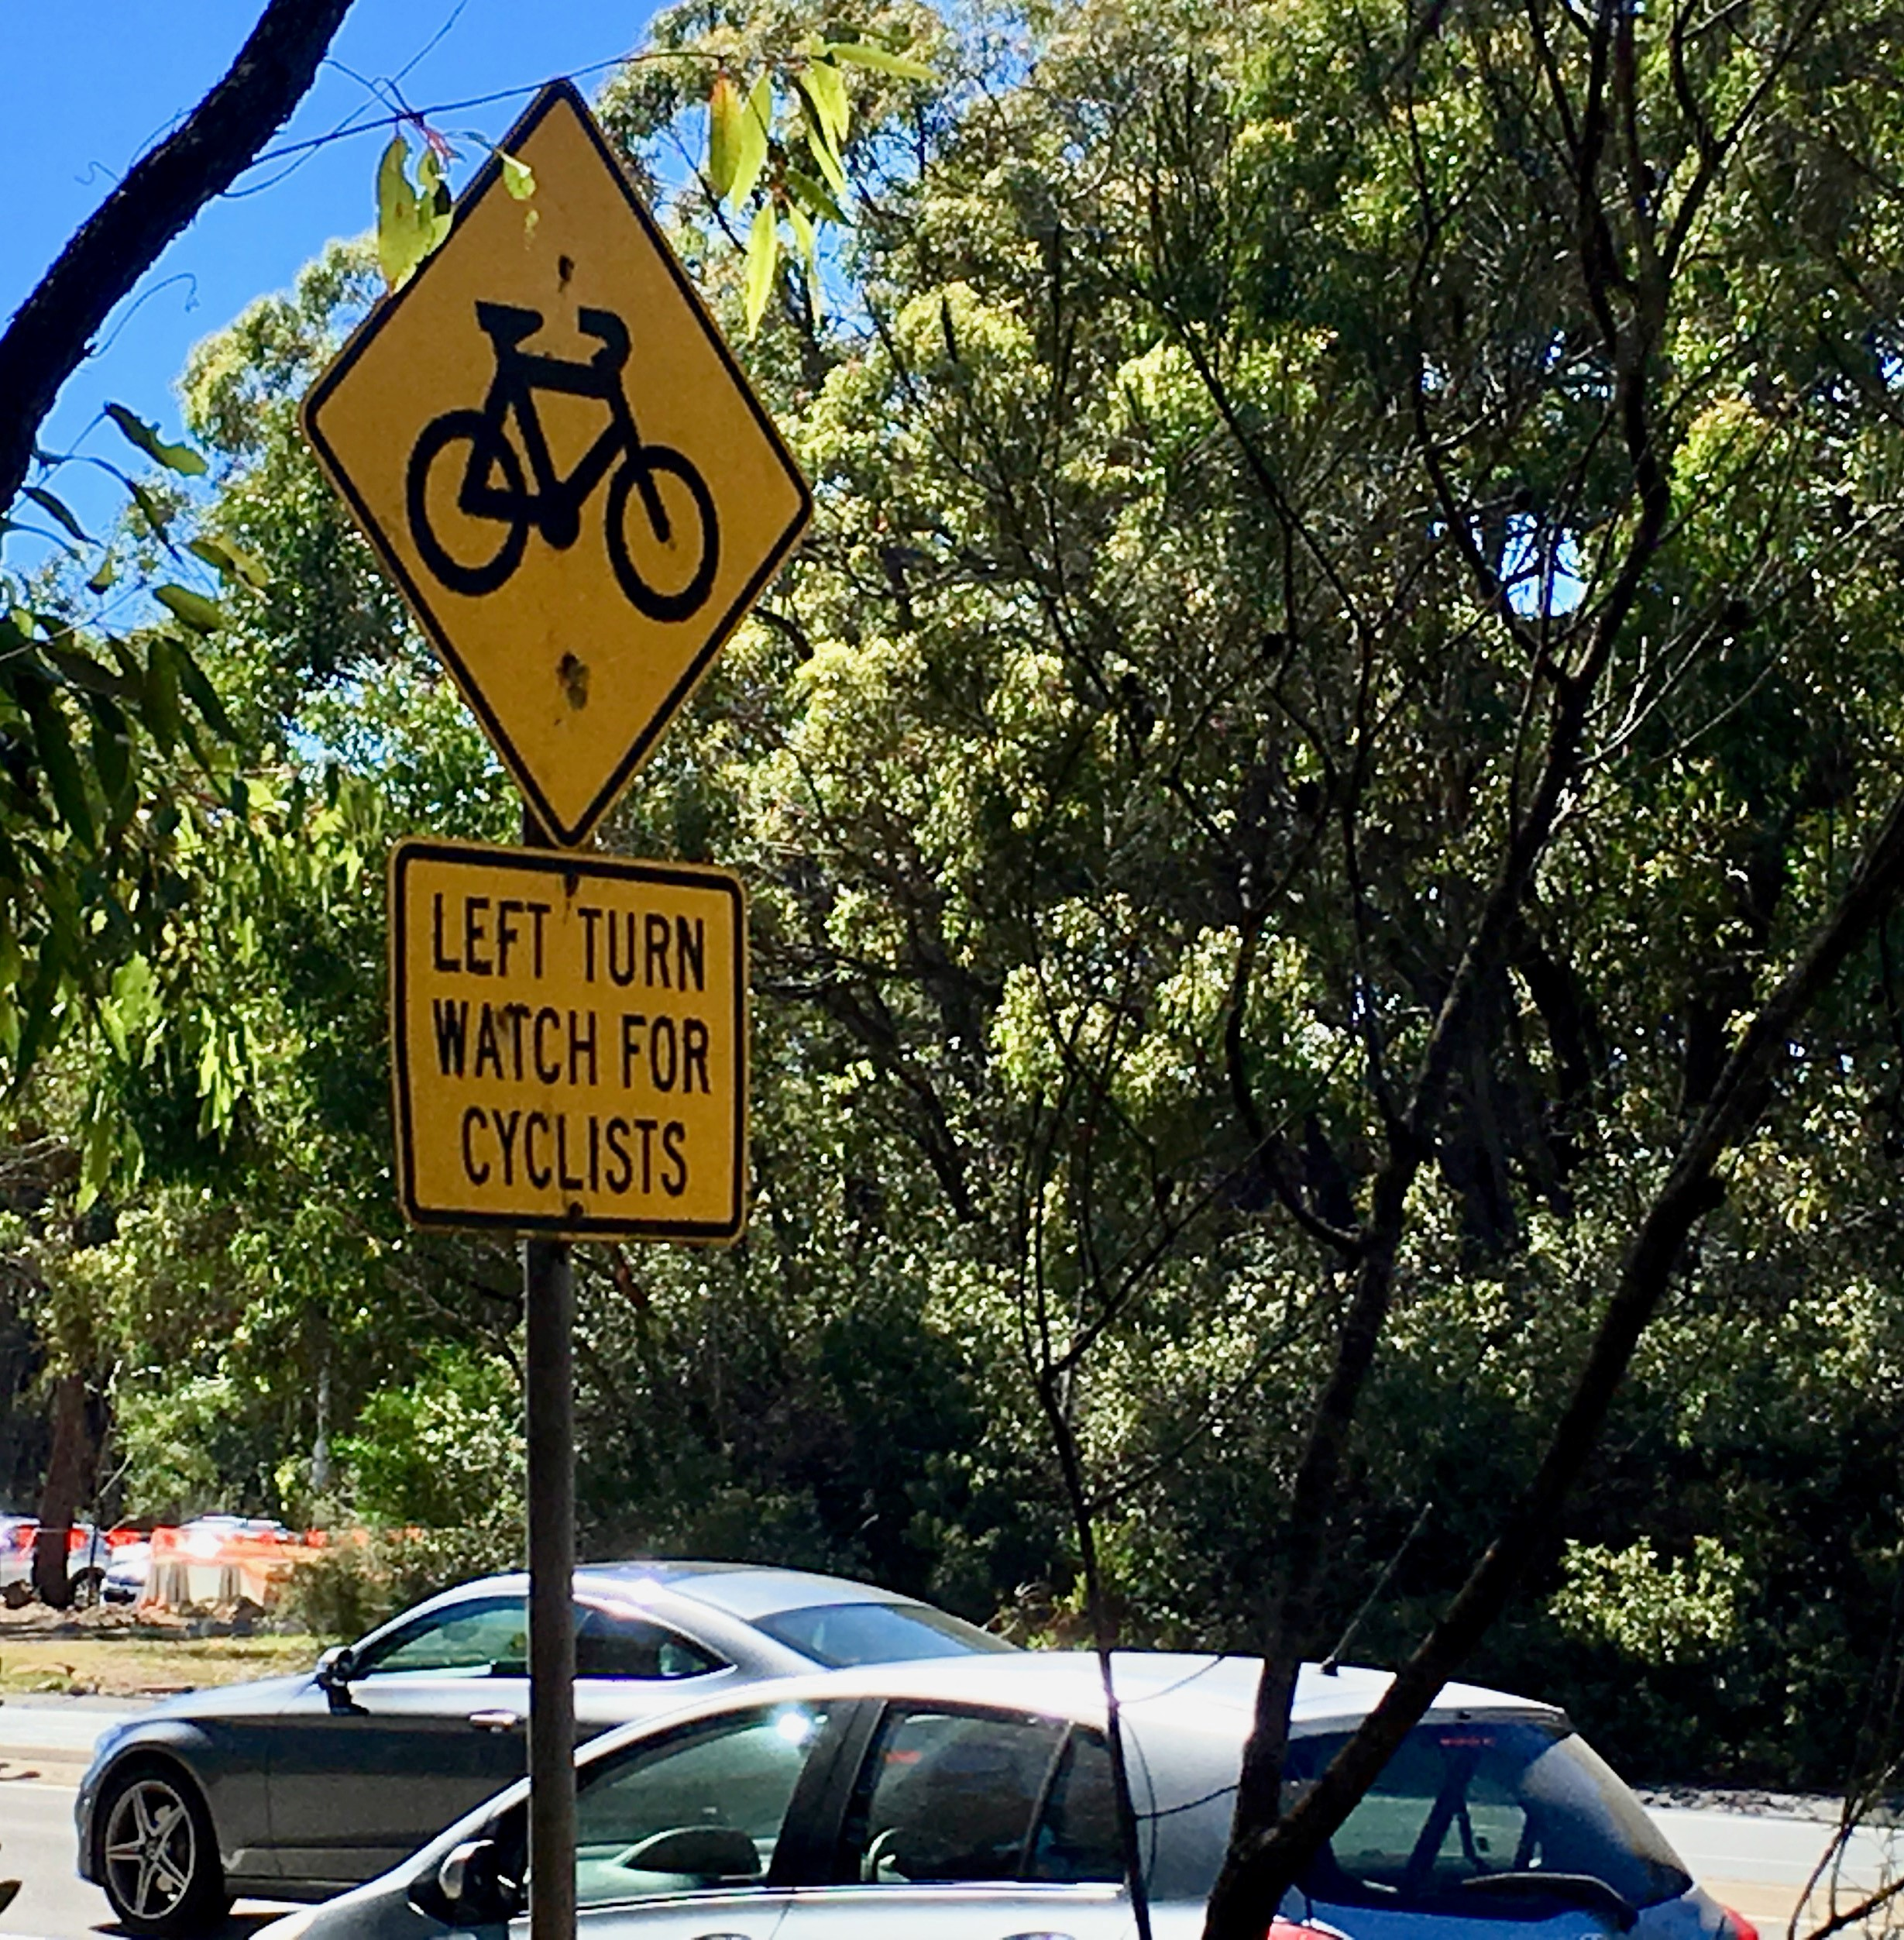 left turnwatch for cyclists